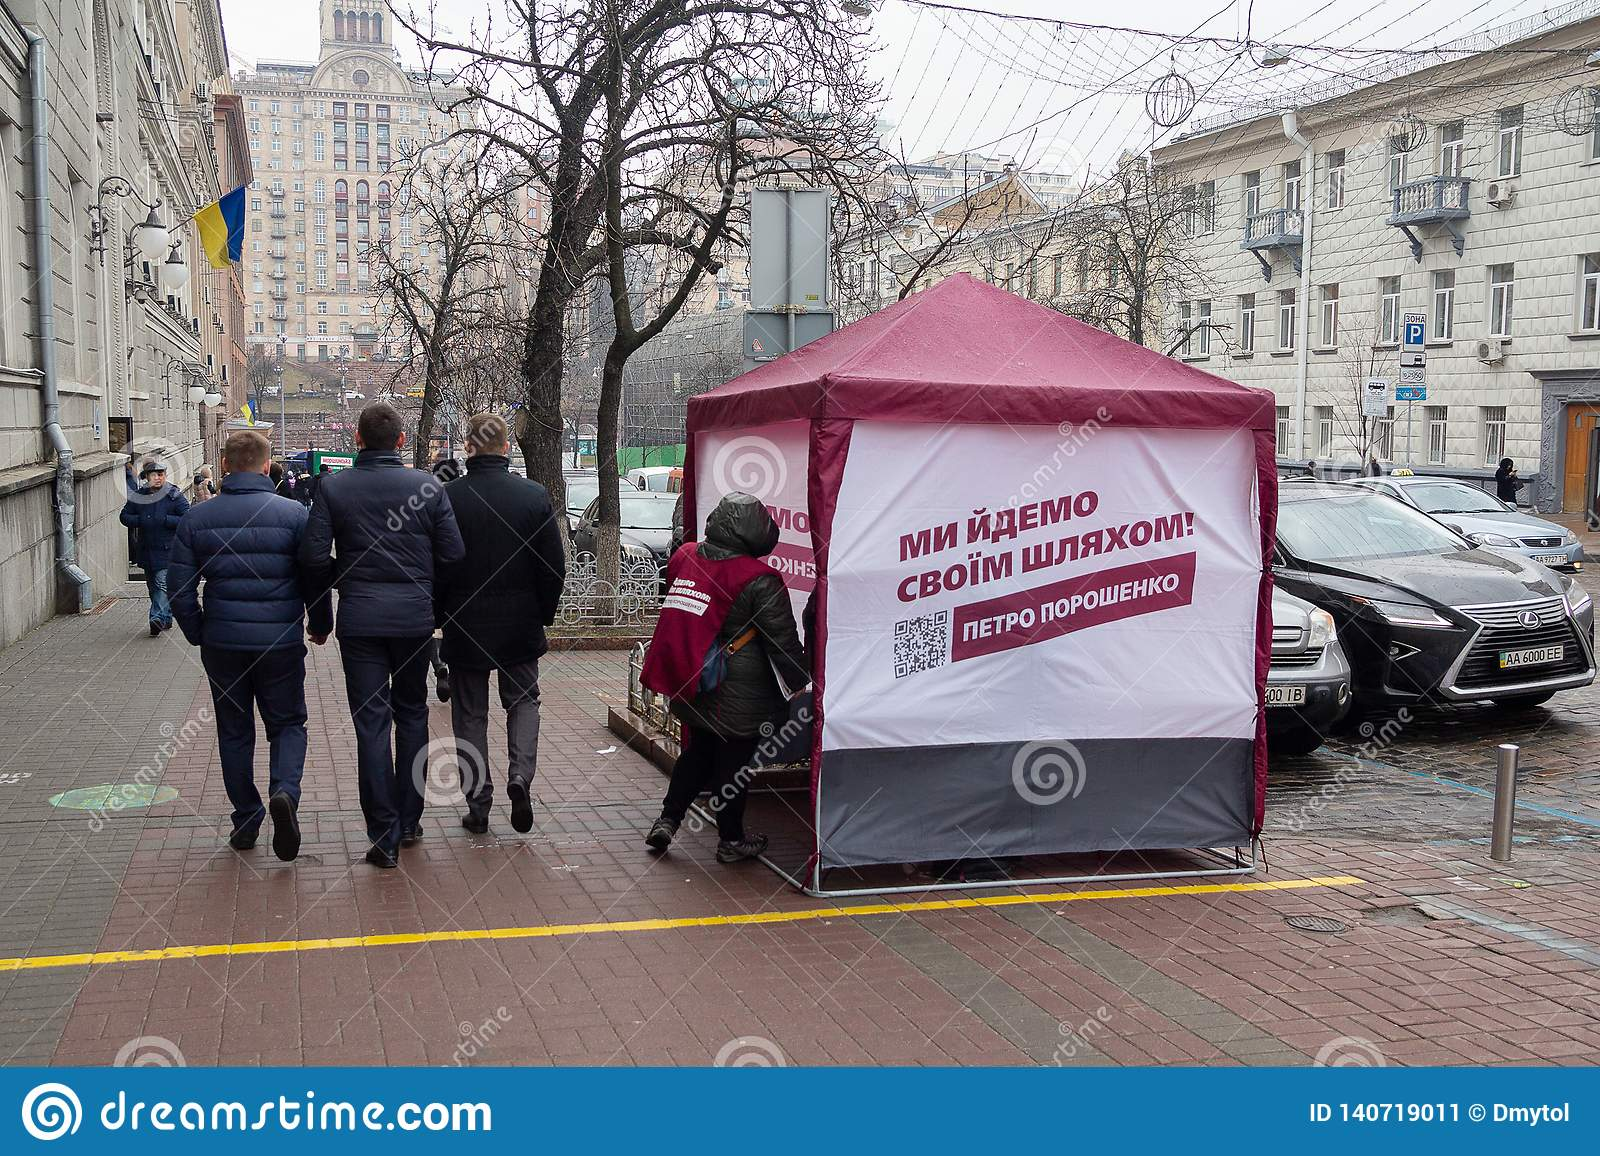 Kiev, Ukraine - February 20, 2019: Pre-election campaign before the presidential election